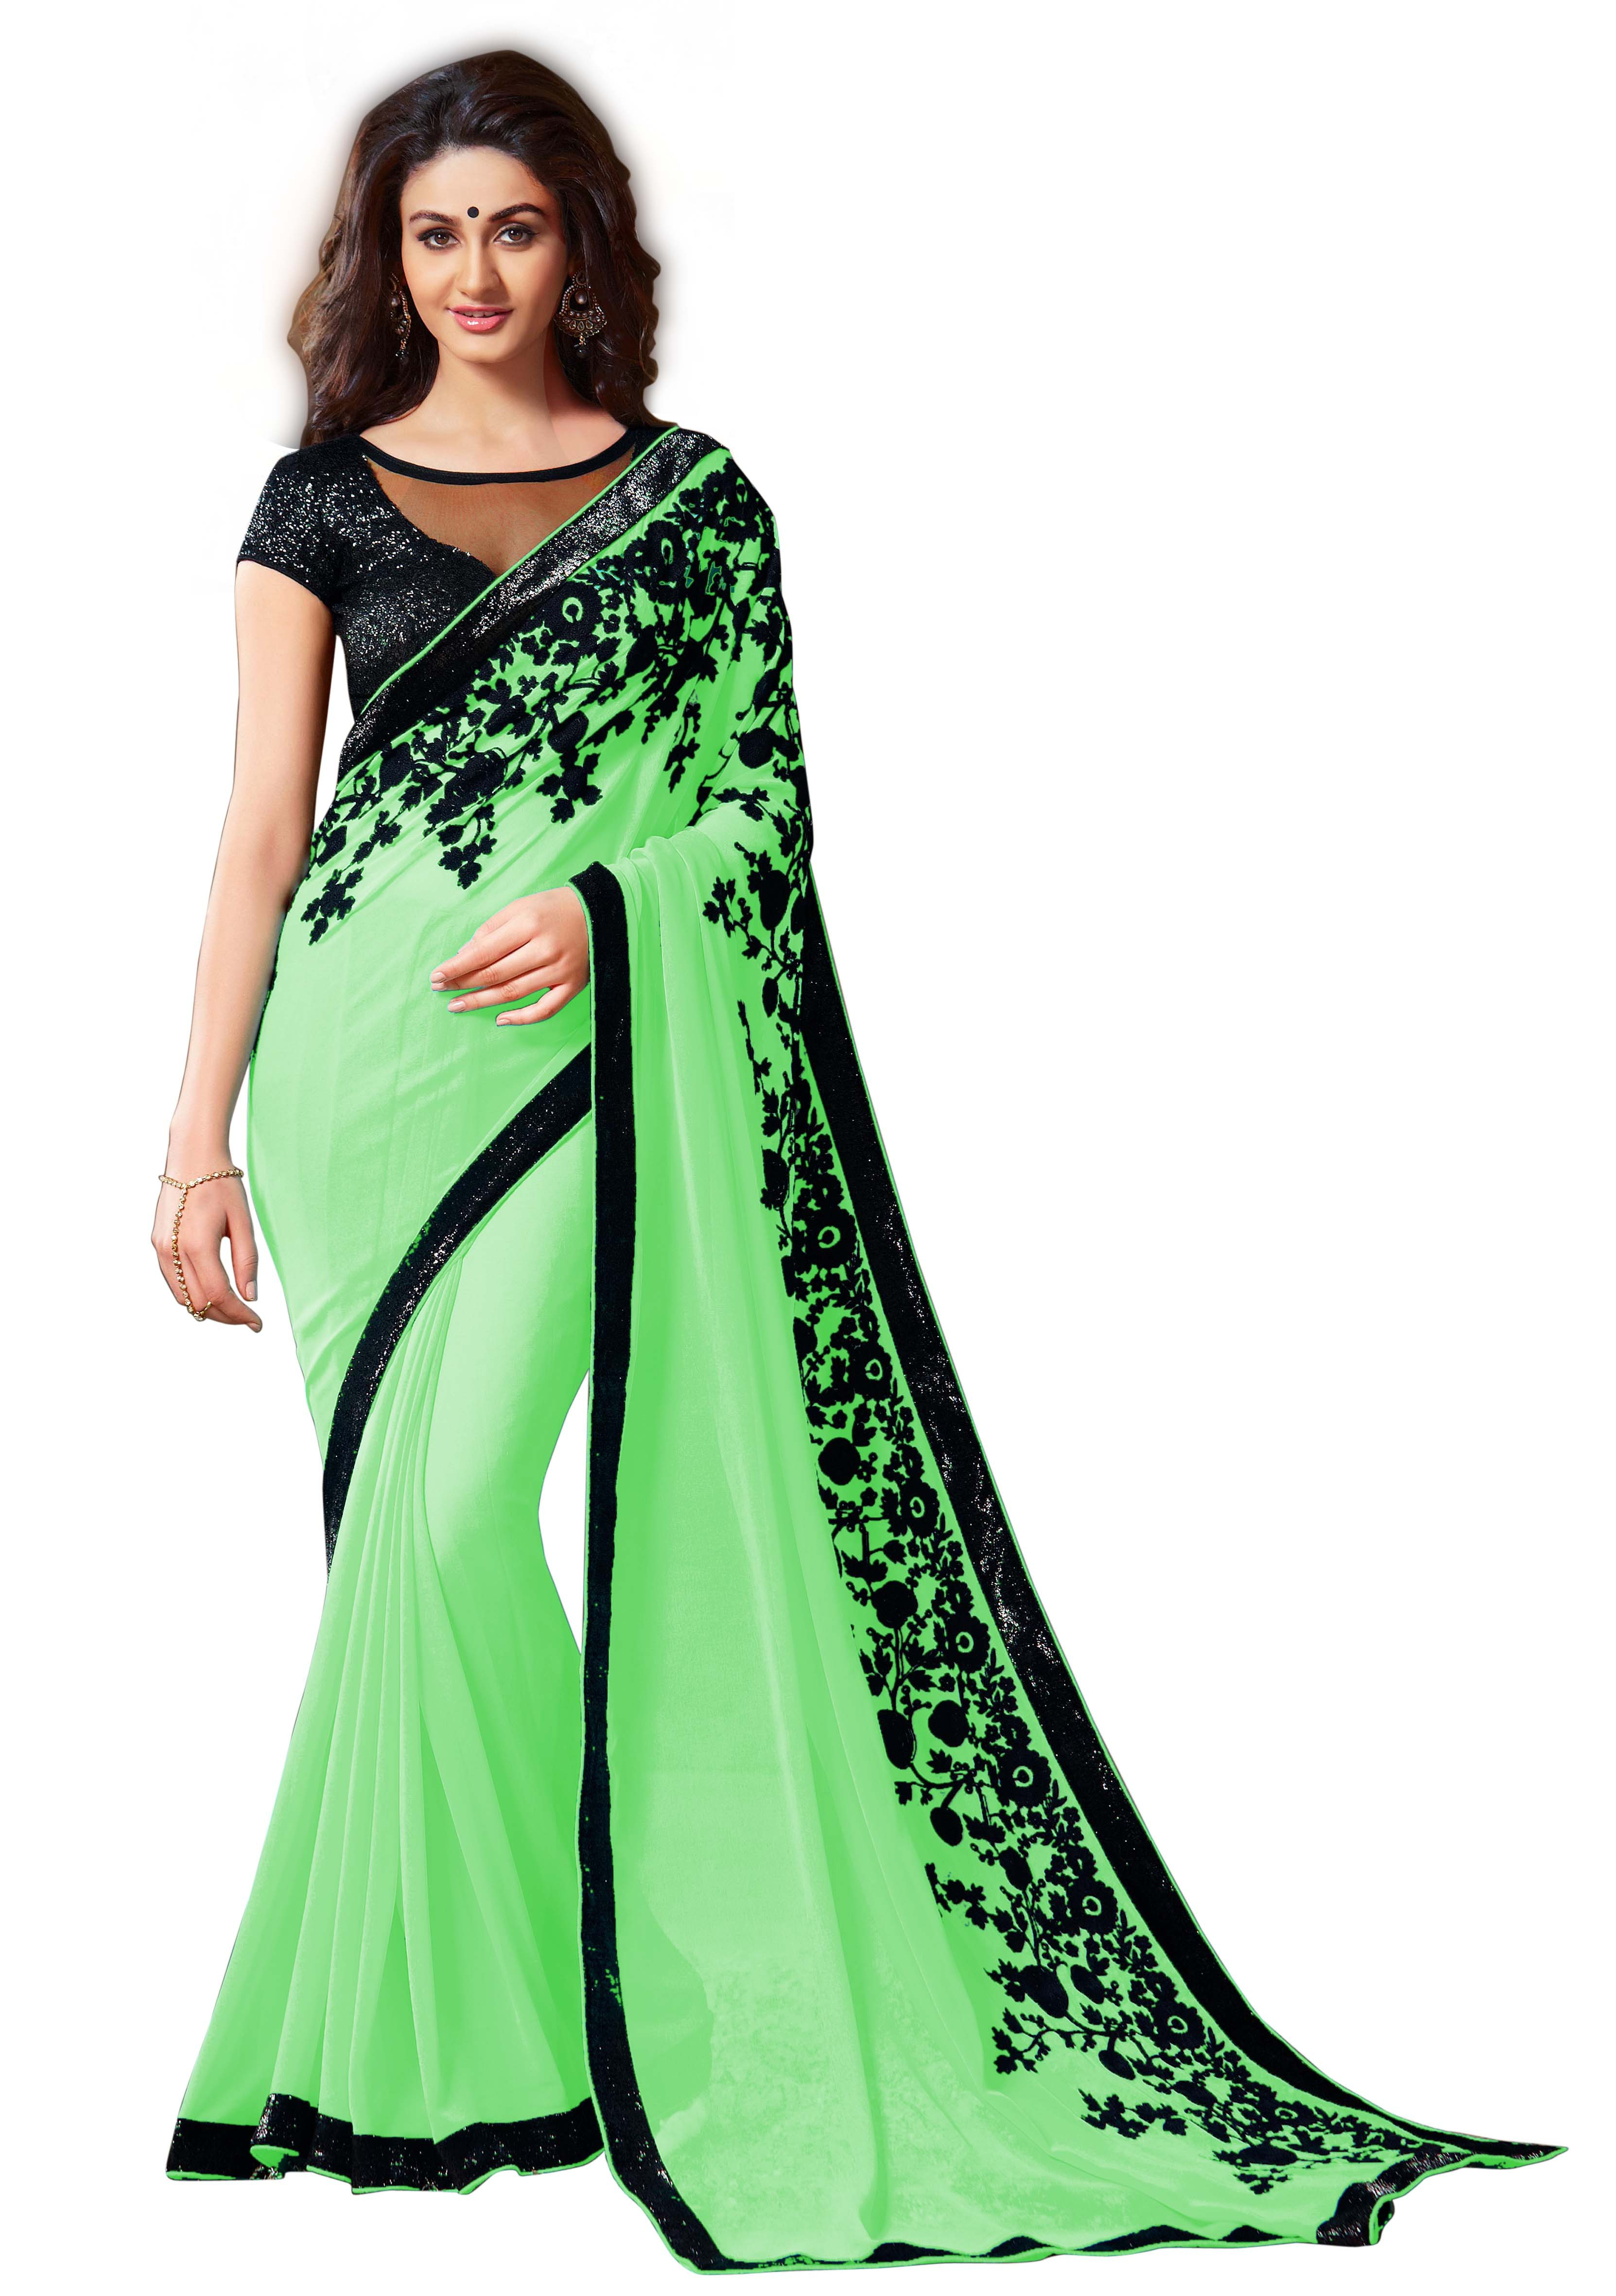 802bc50790c98 Buy Shital Fashion World Parrot Green Embroidery Aari Work Georgette Saree  Online